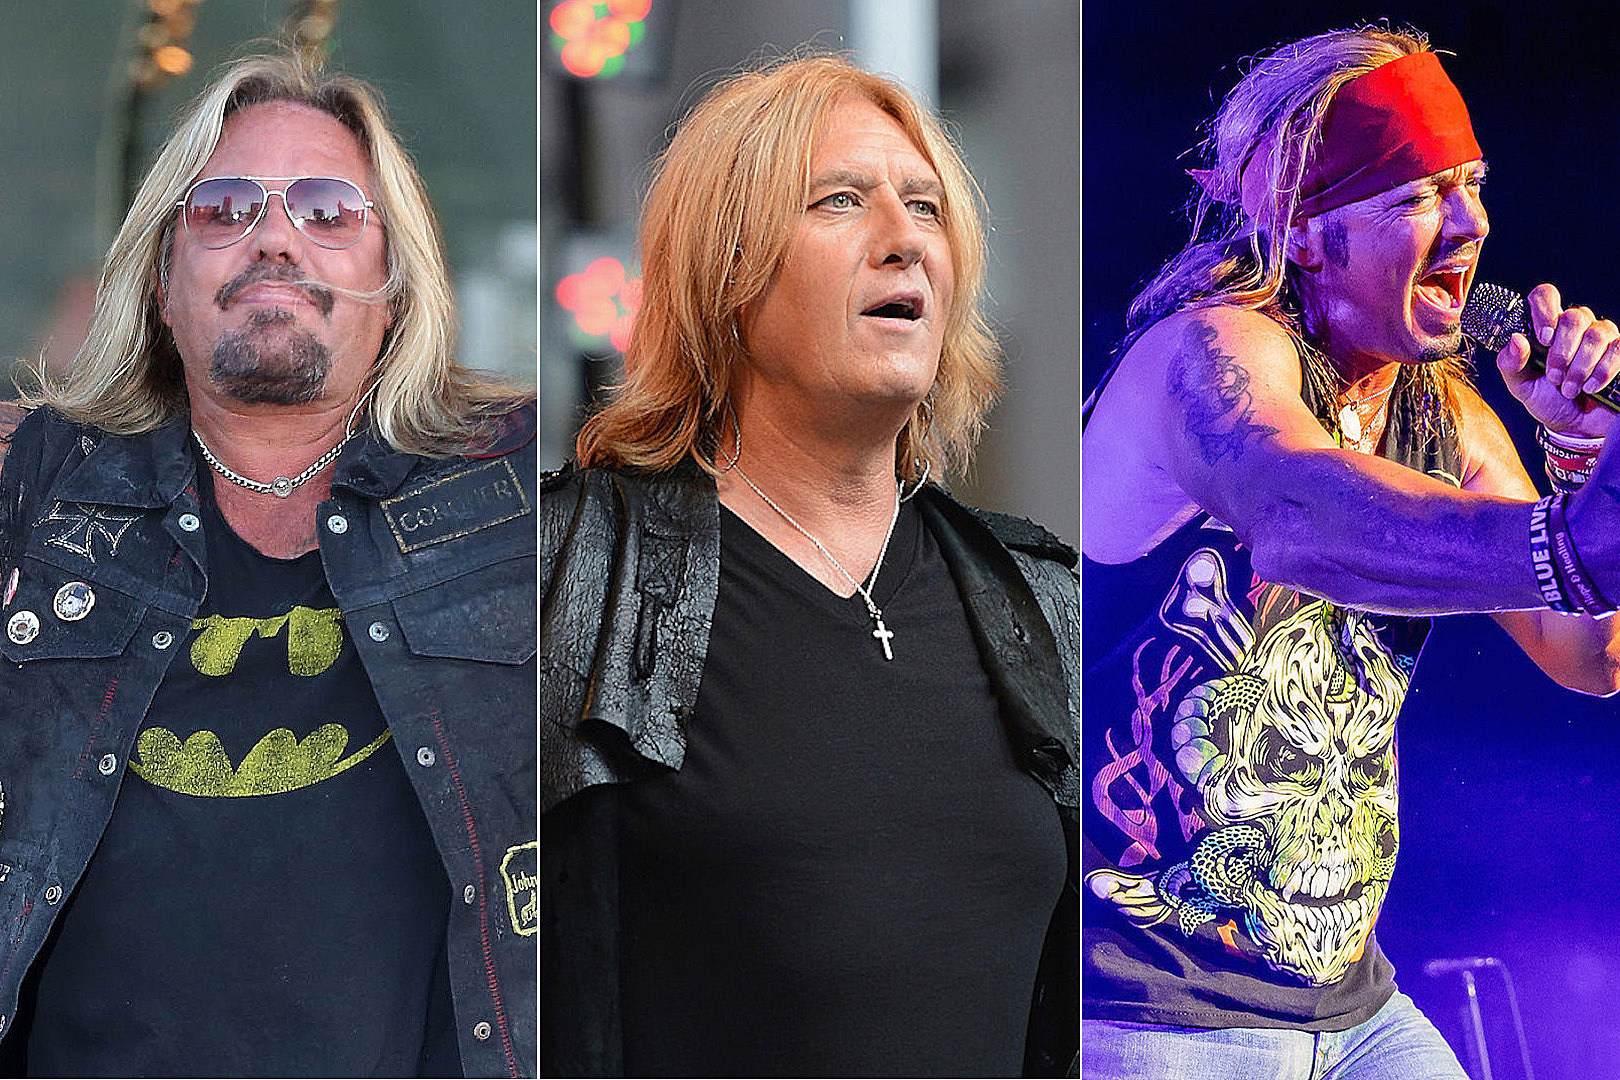 Tesla Tour 2020.Motley Crue Def Leppard Announce 2020 Stadium Tour With Poison